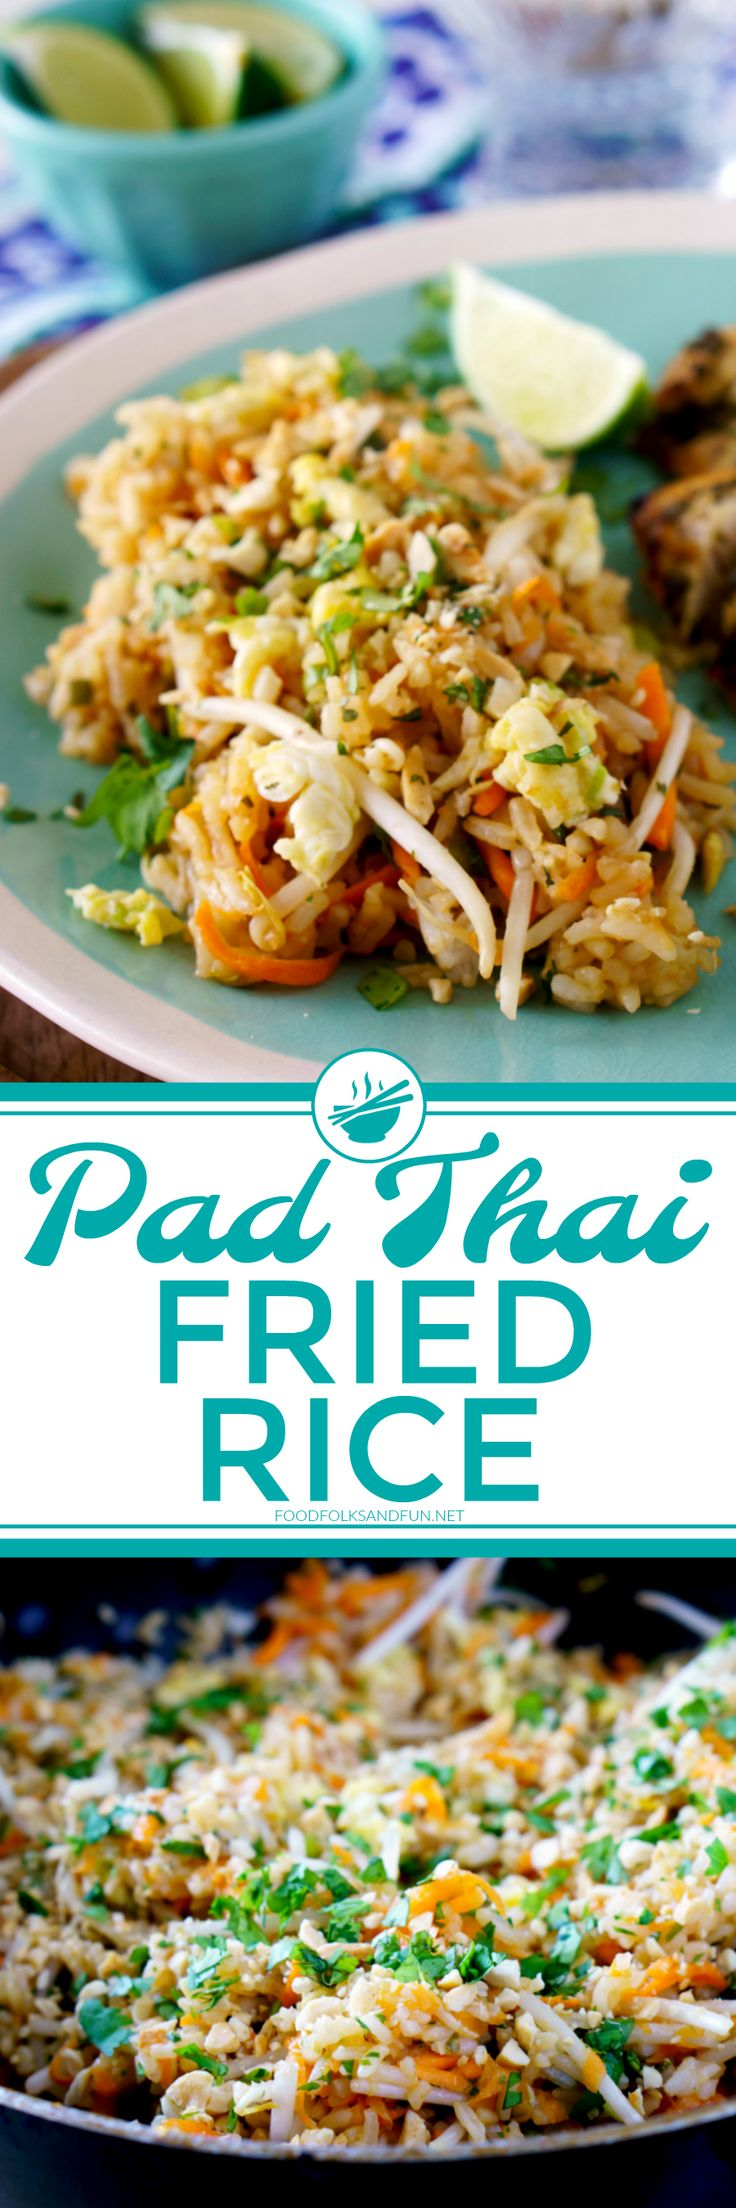 Image result for Pad Thai, very sumptuous but unhealthy